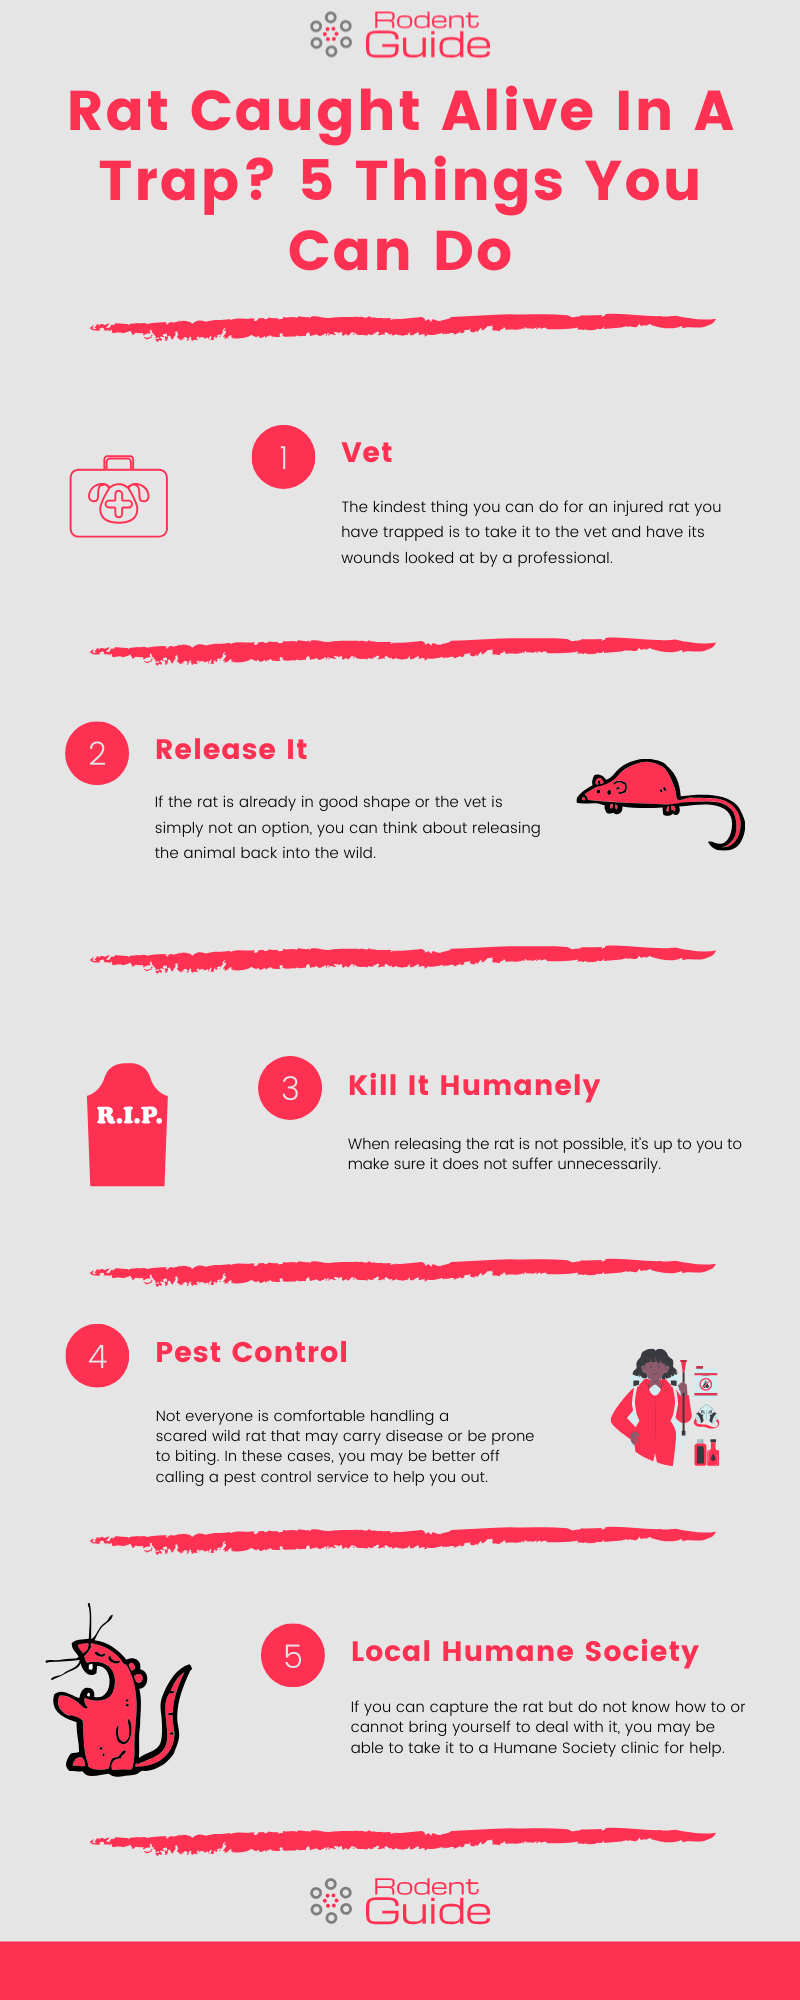 Rat Caught Alive In A Trap_ 5 Things You Can Do Infographic